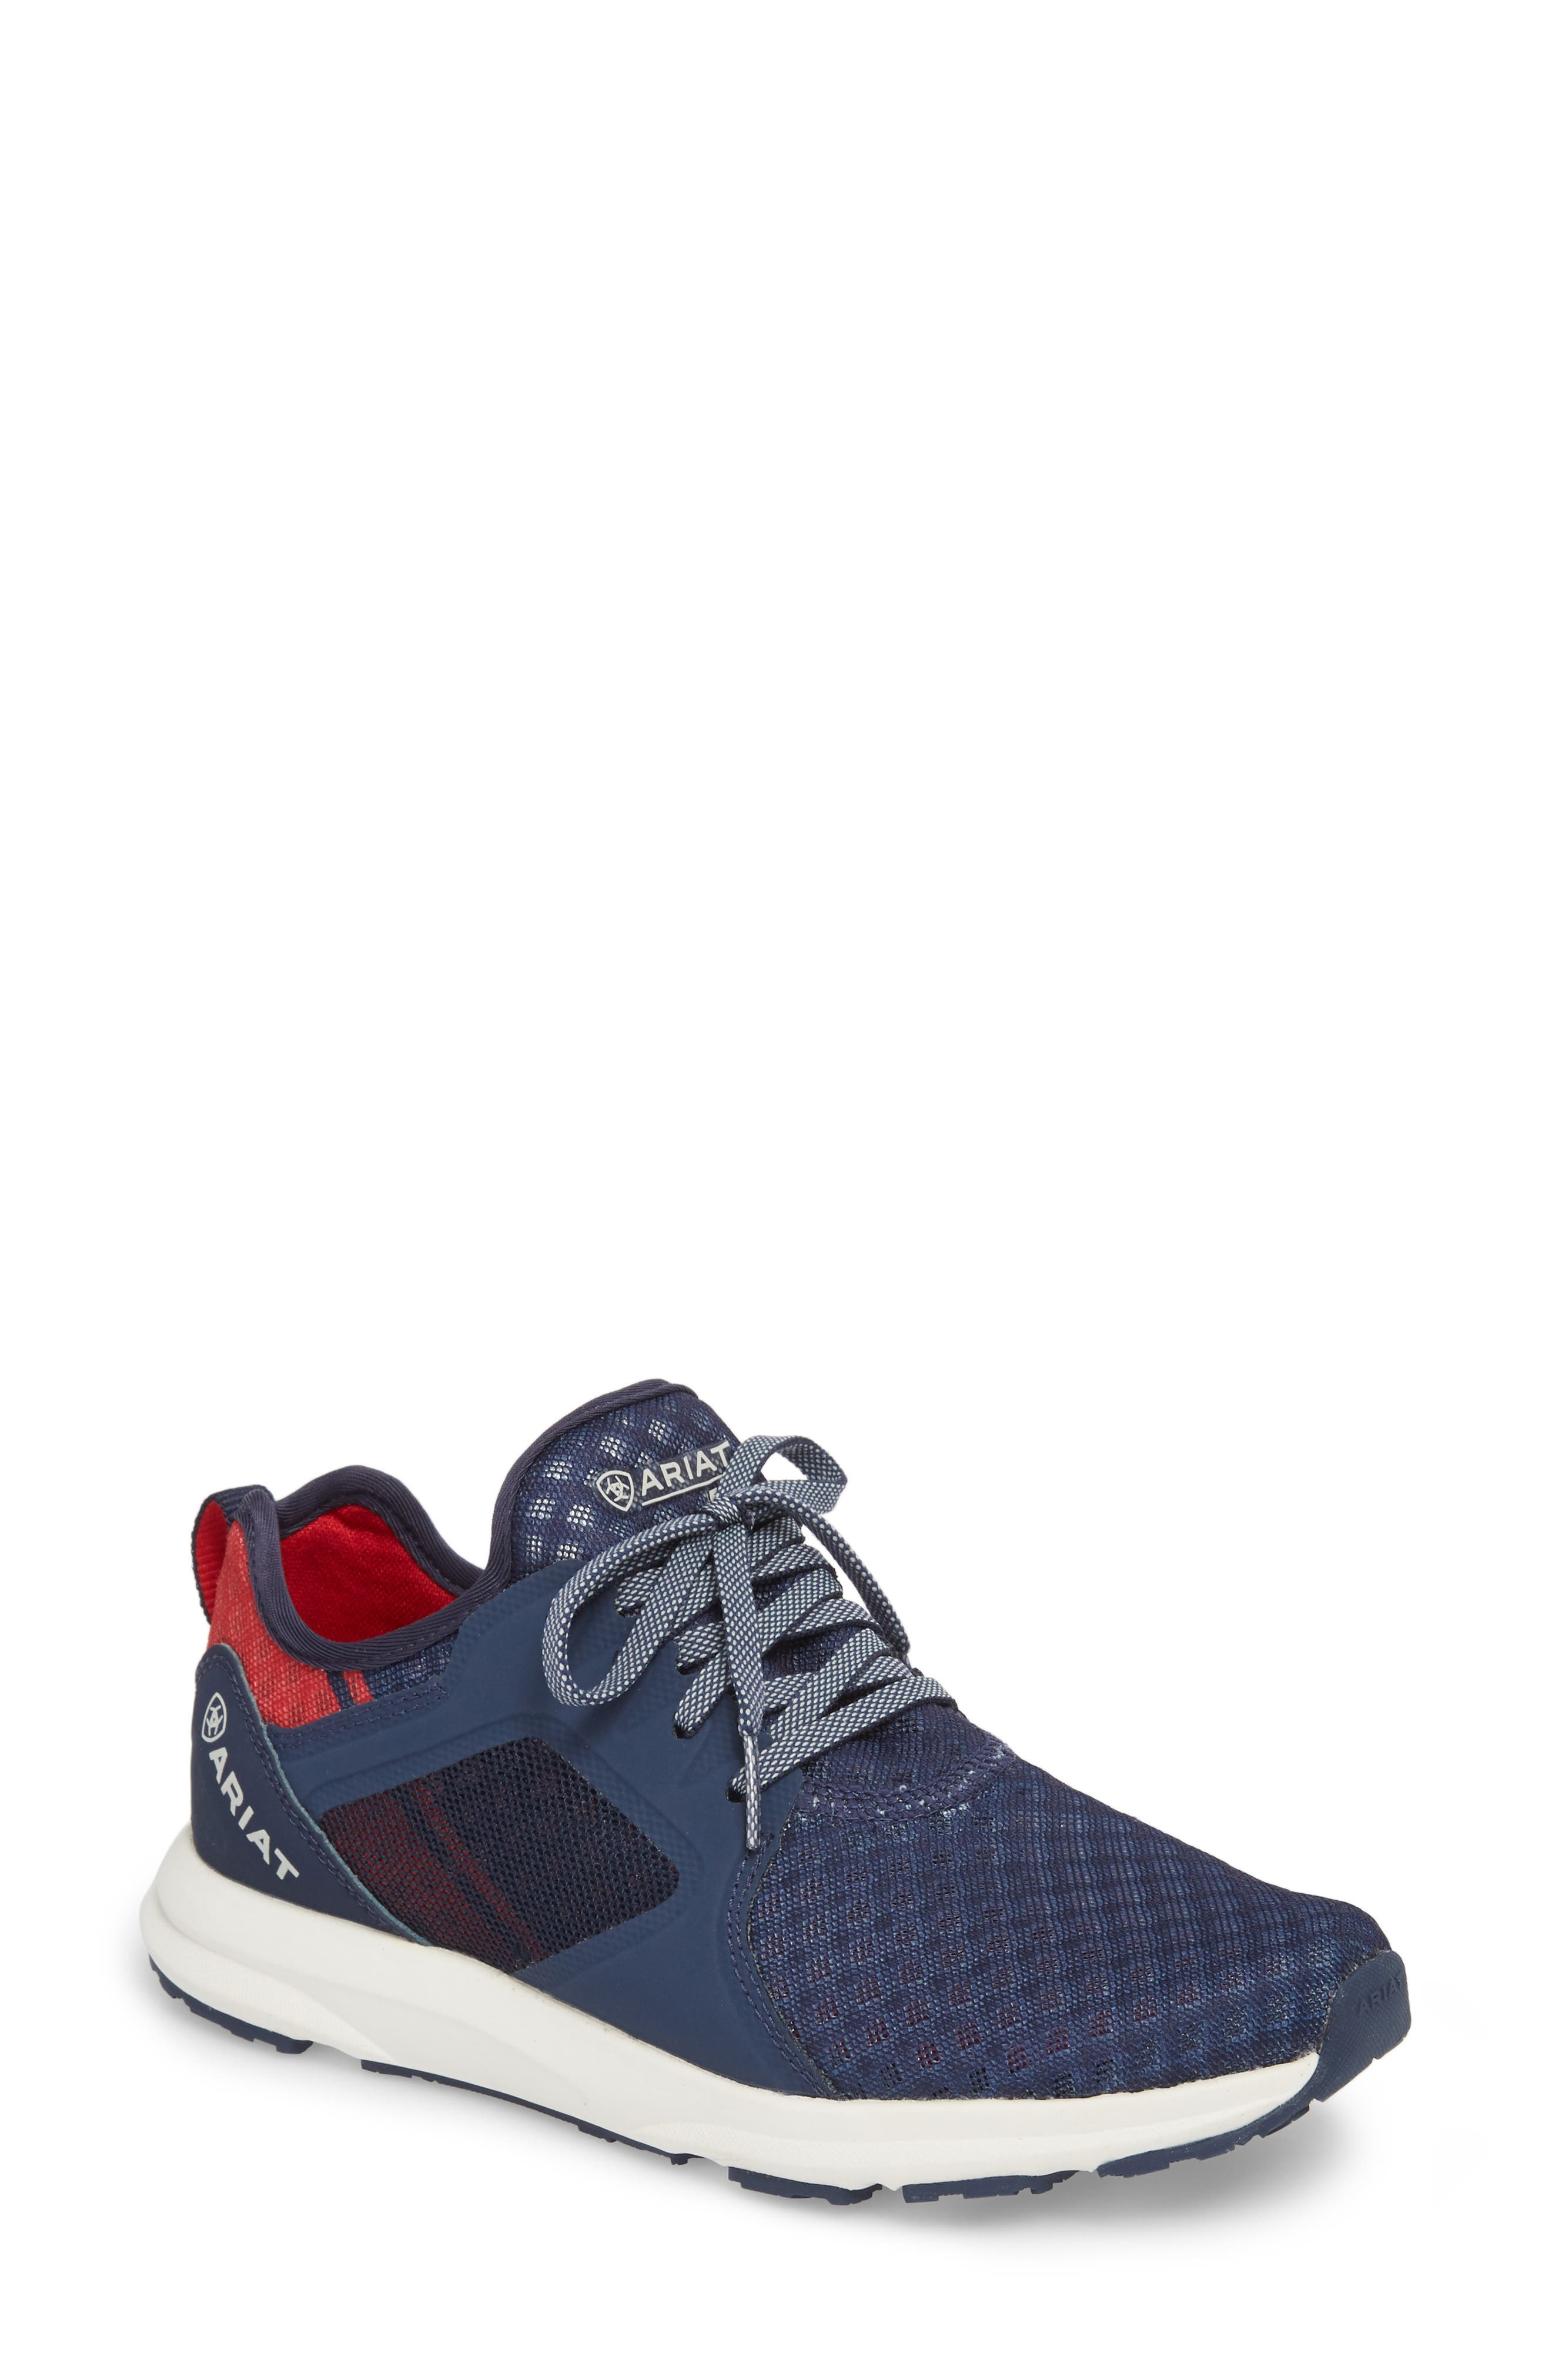 Fuse Print Sneaker,                         Main,                         color, TEAM NAVY FABRIC